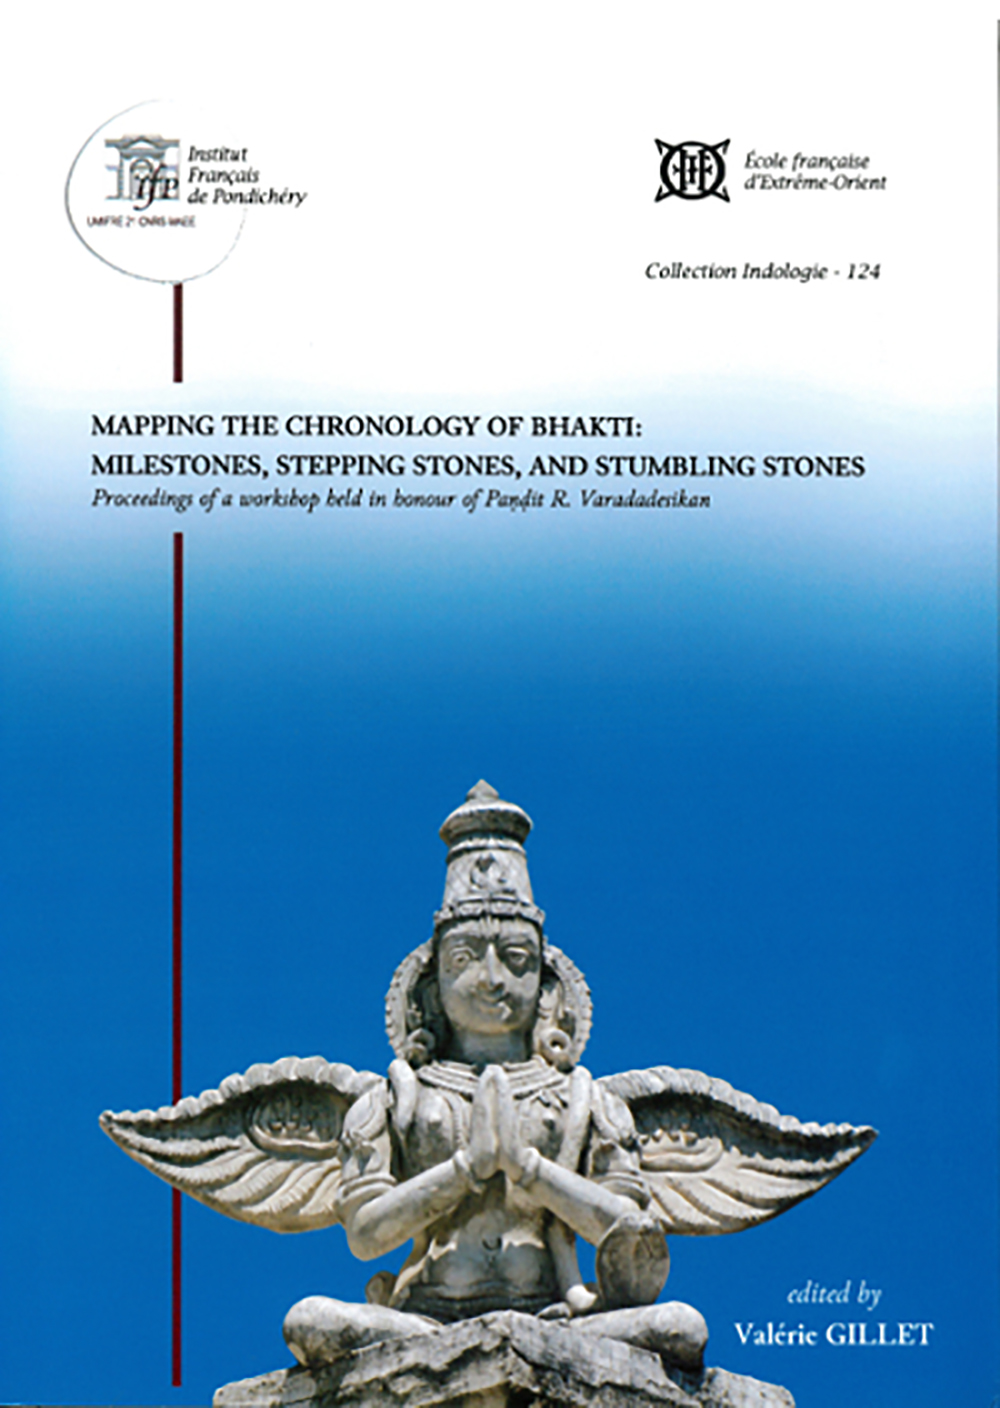 Mapping the Chronology of Bhakti: Milestones, Stepping Stones, and Stumbling Stones